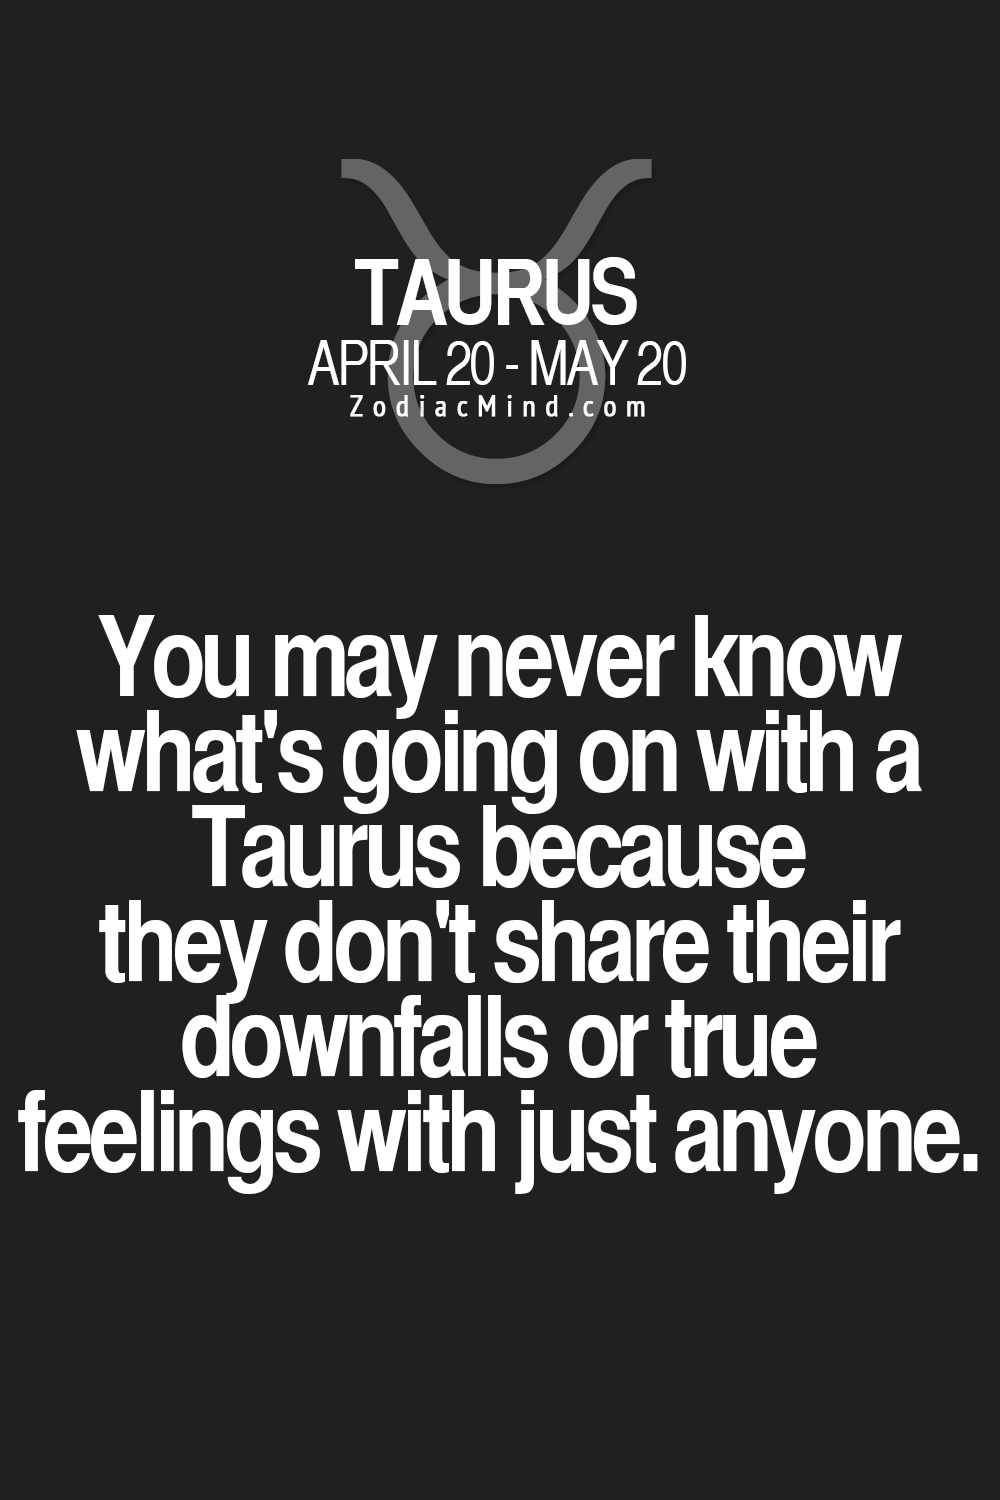 You may never know what's going on with a Taurus because they don't